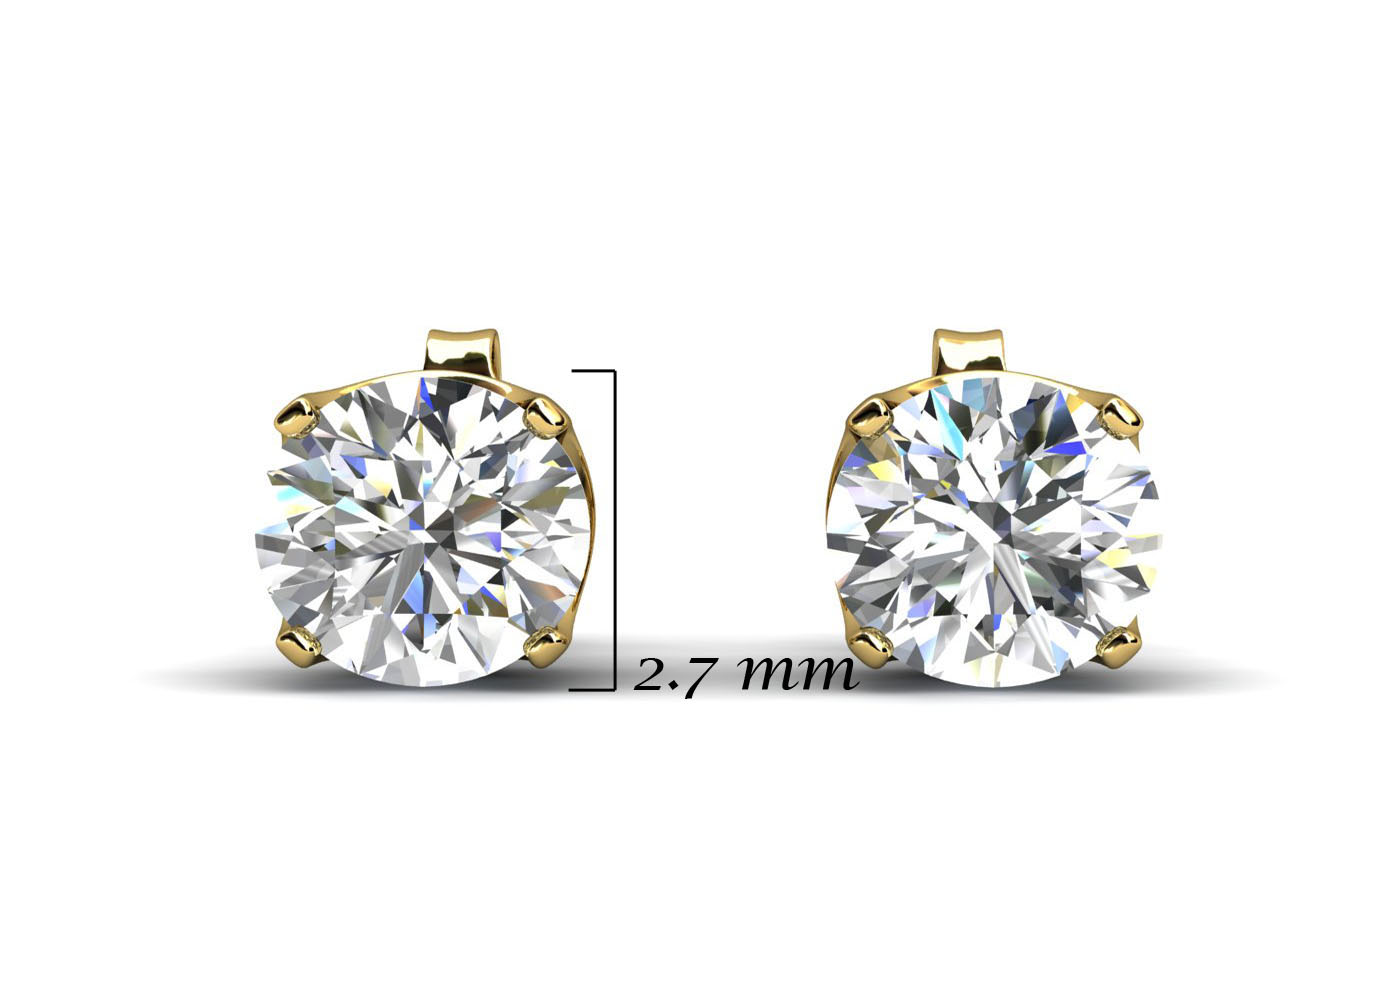 9ct Claw Set Diamond Earrings 0.15 Carats - Image 5 of 6